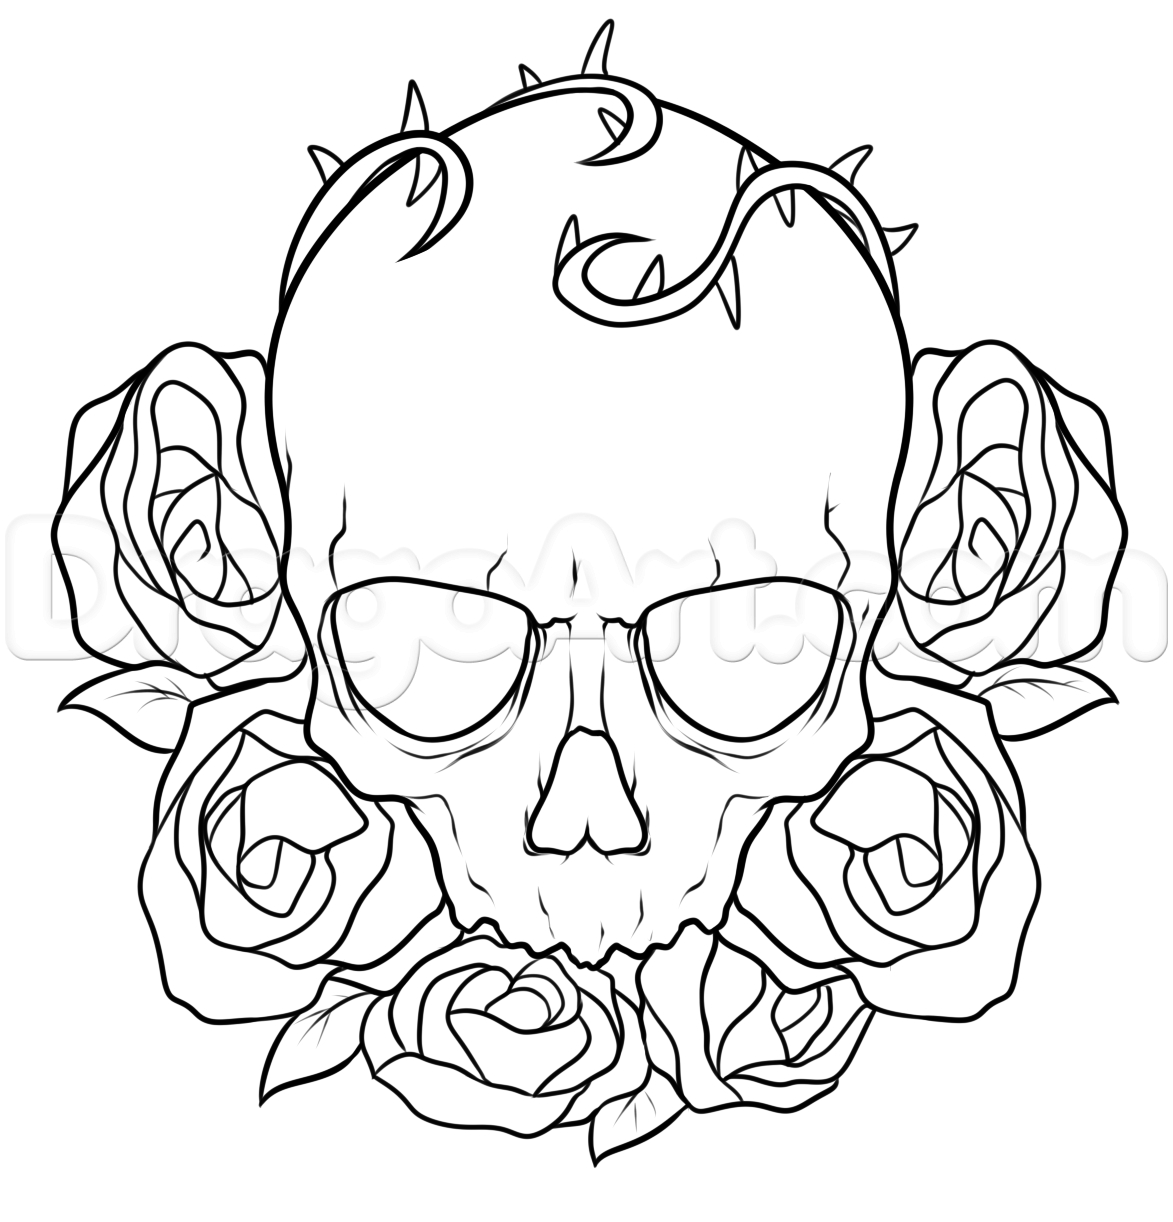 1173x1222 Rose Drawings In Black And White Step By Step